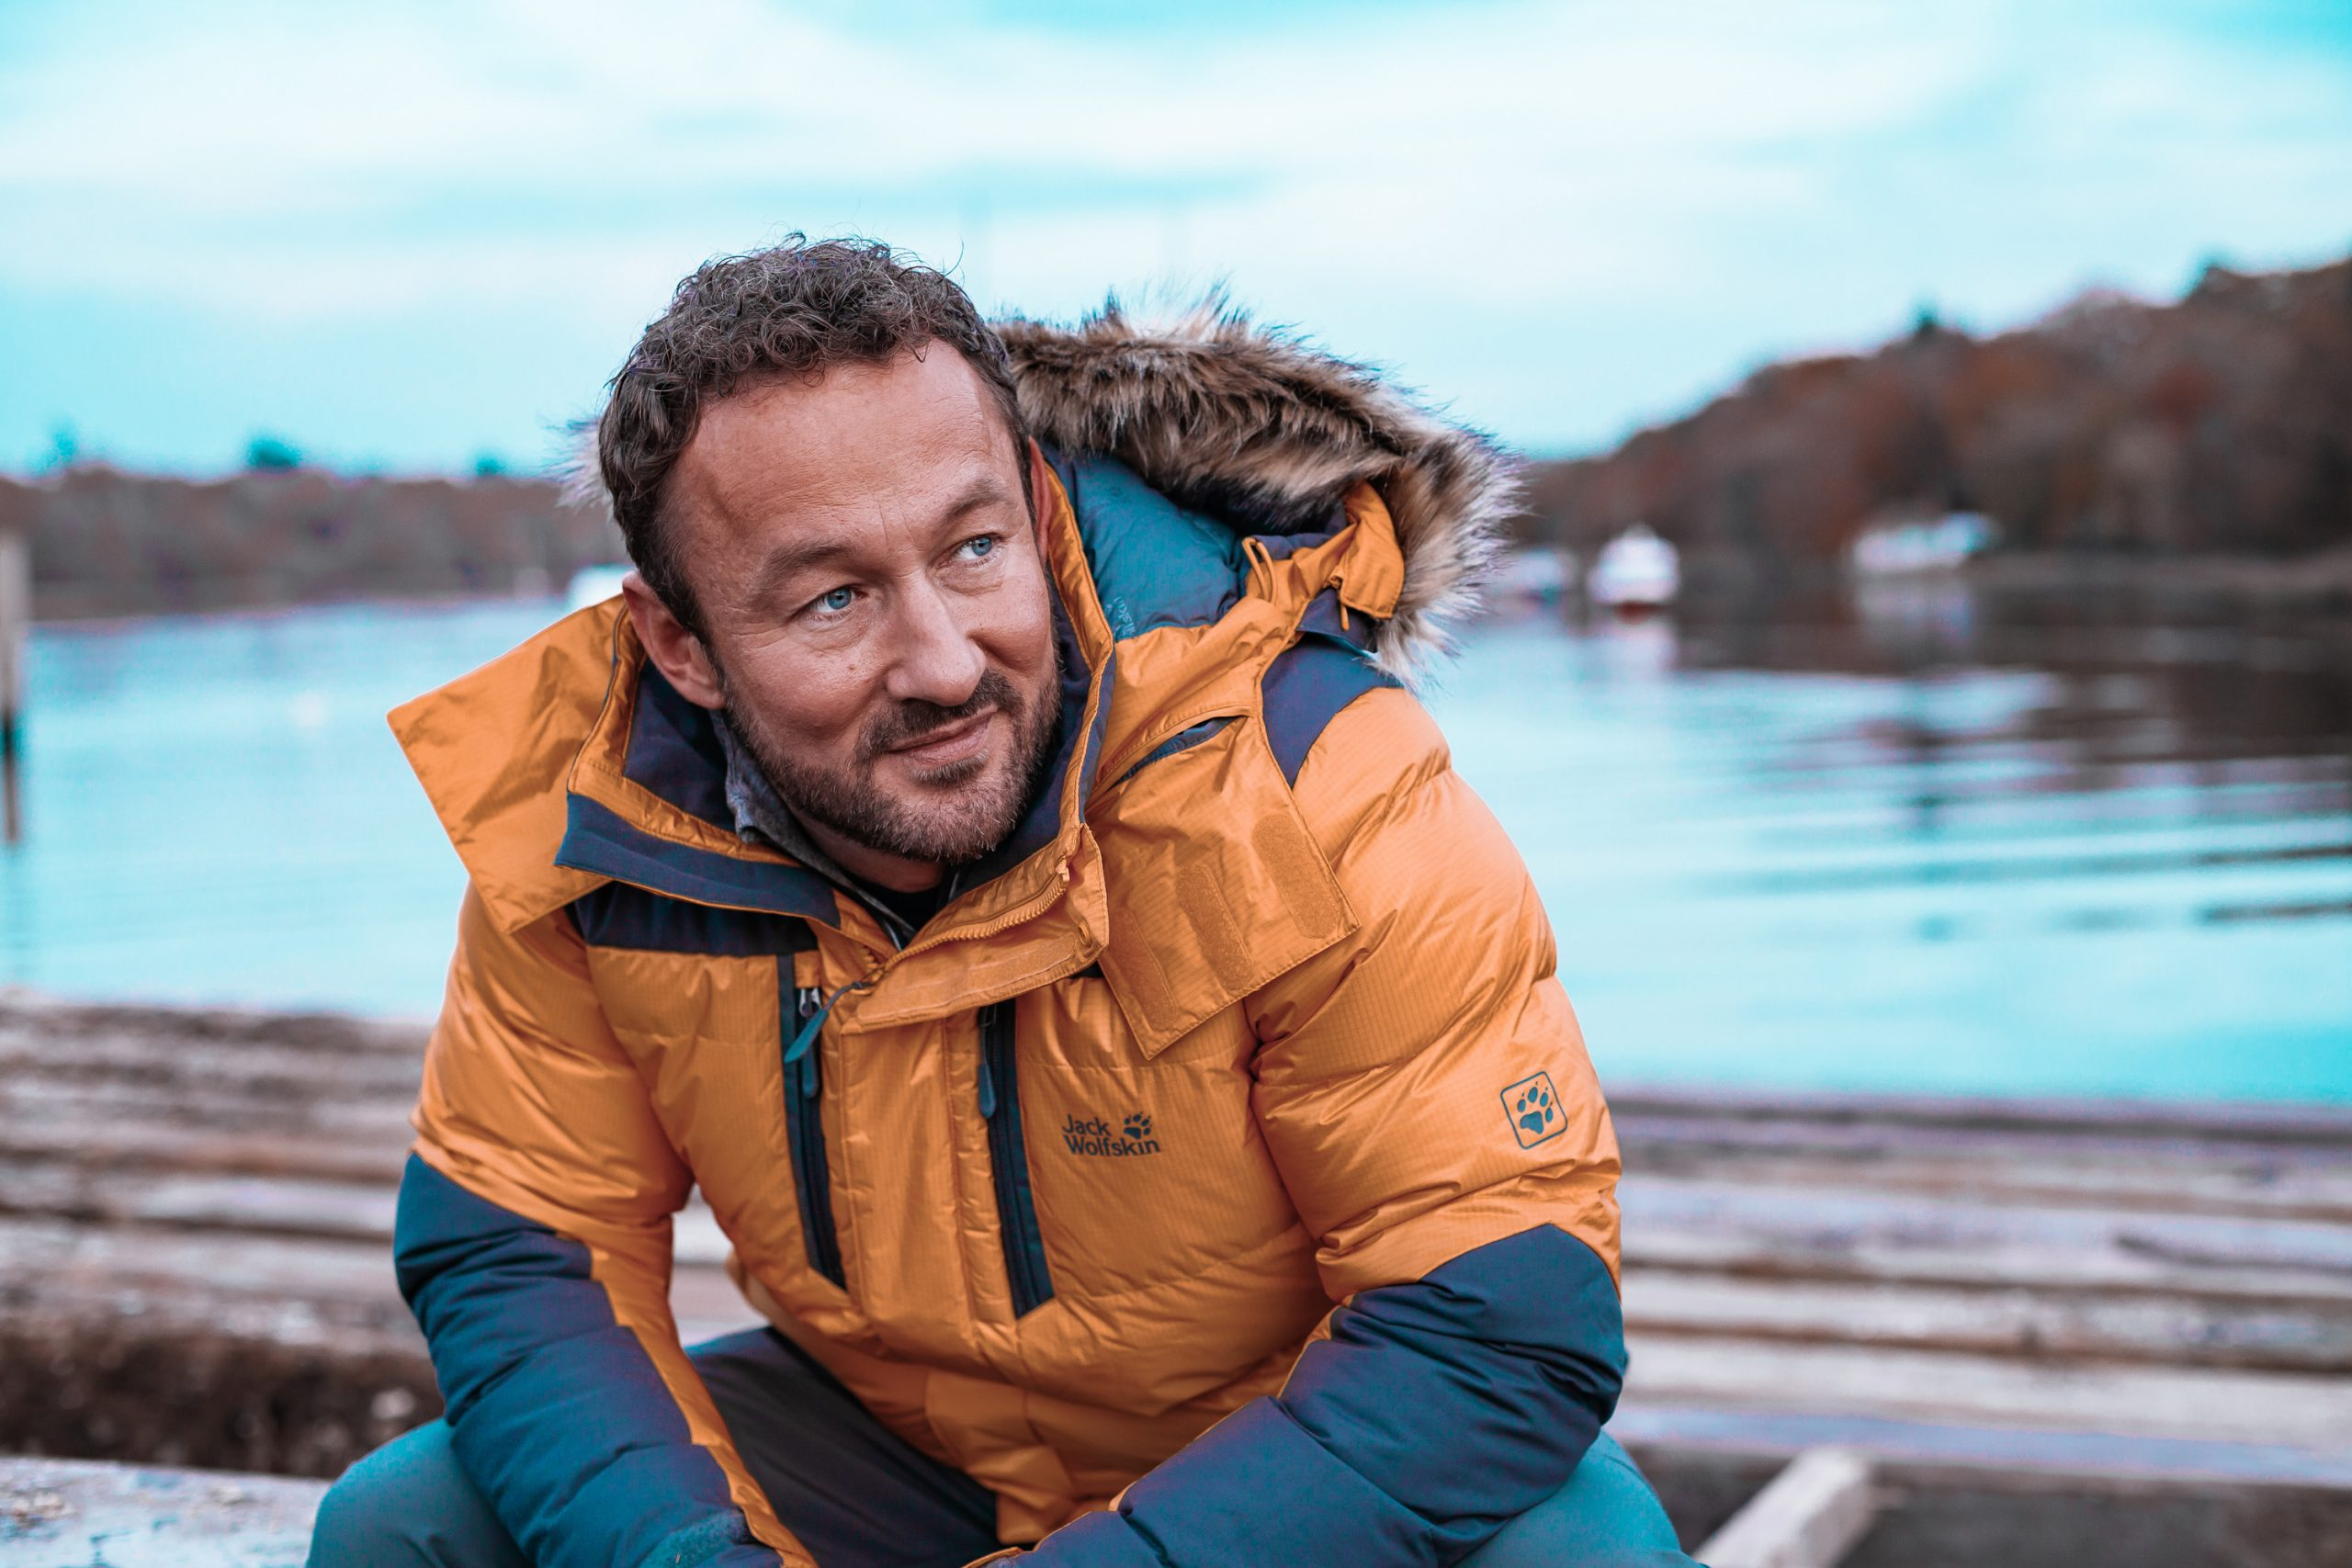 James Rostance sat on a log pile near the water in a yellow jacket